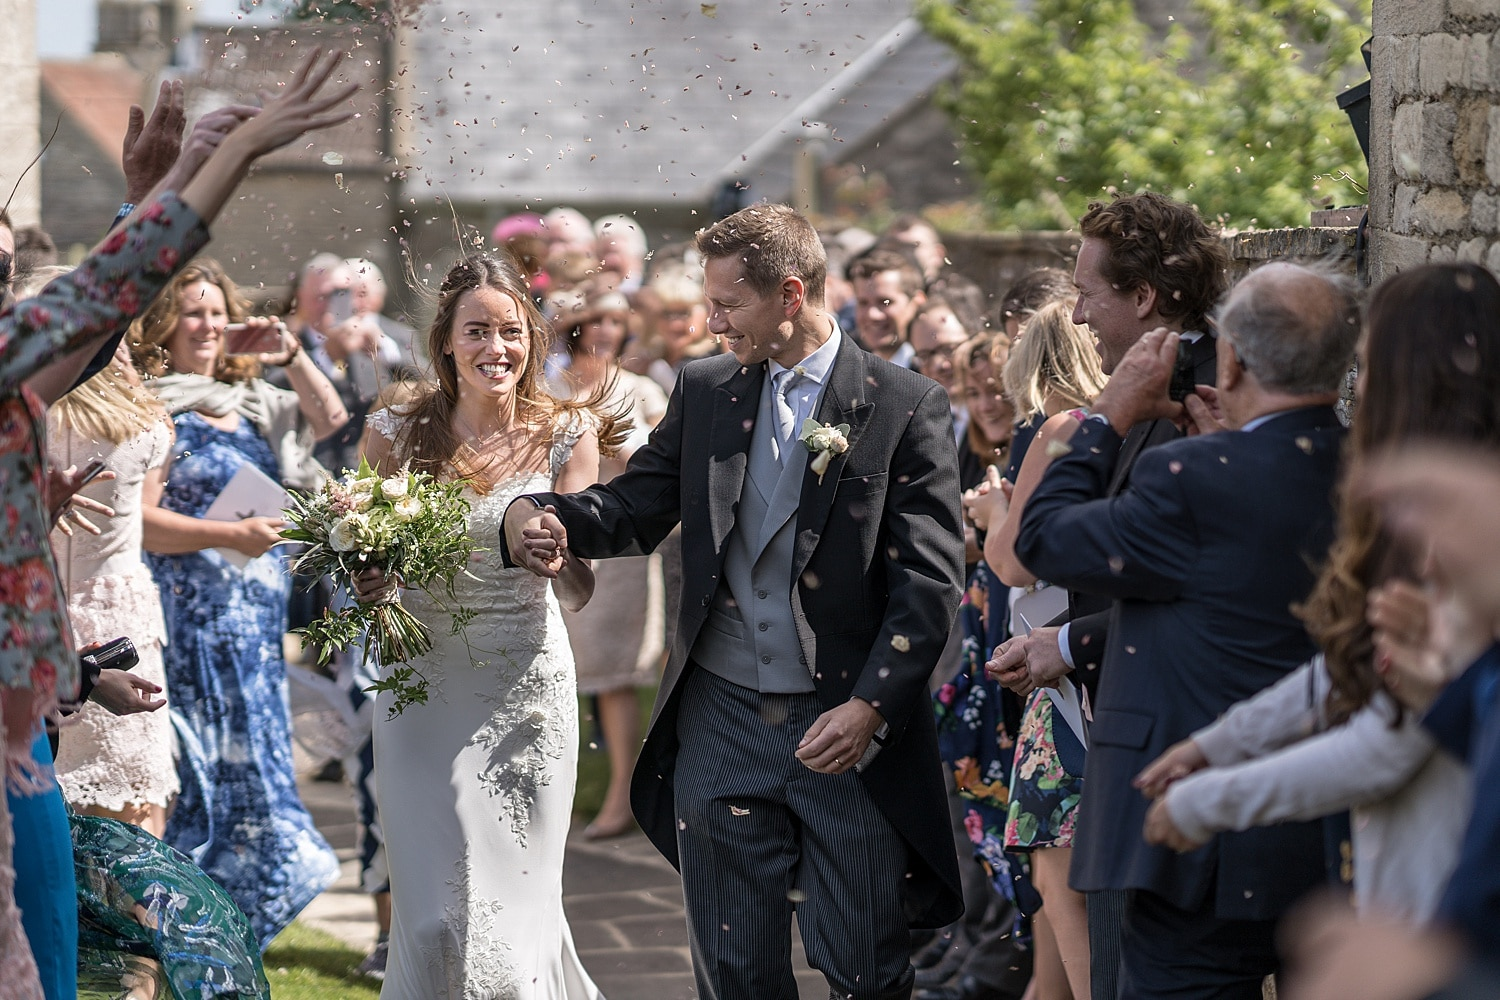 Bride and groom hit with confetti